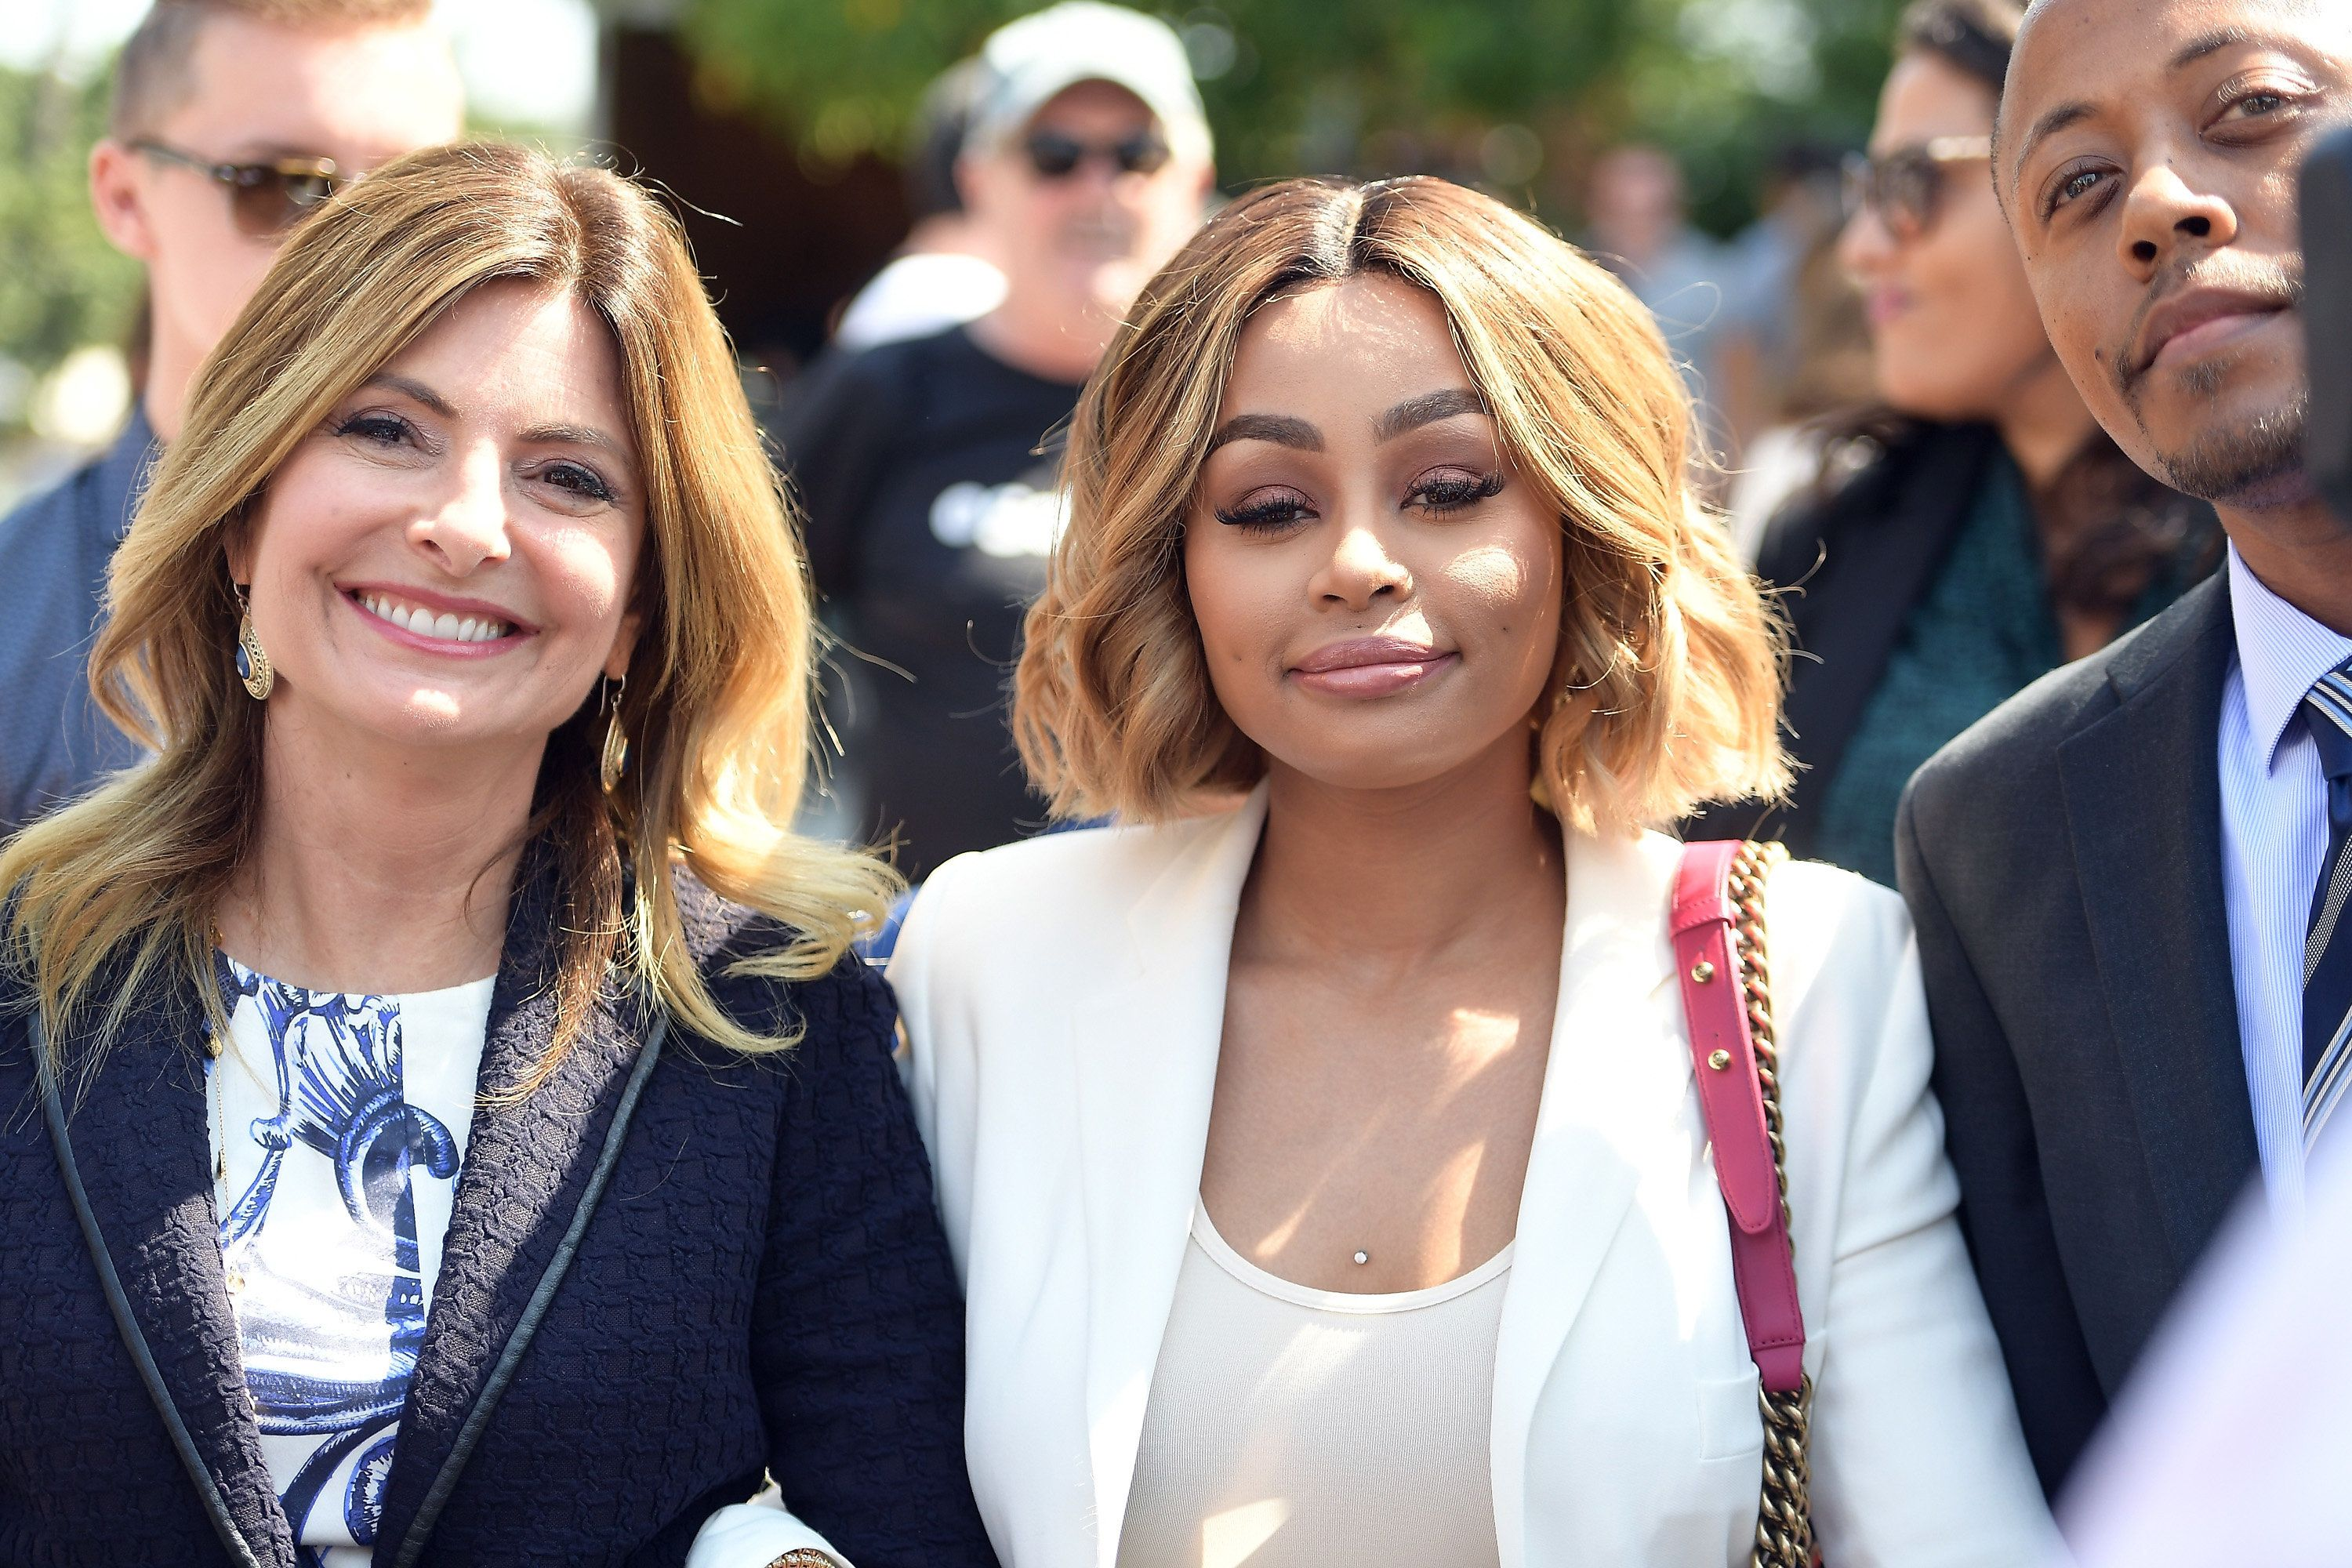 LOS ANGELES, CA - JULY 10:  Lisa Bloom (L) and Blac Chyna attend a pre-court hearing press conference at Los Angeles Superior Court on July 10, 2017 in Los Angeles, California.  (Photo by Matt Winkelmeyer/Getty Images)